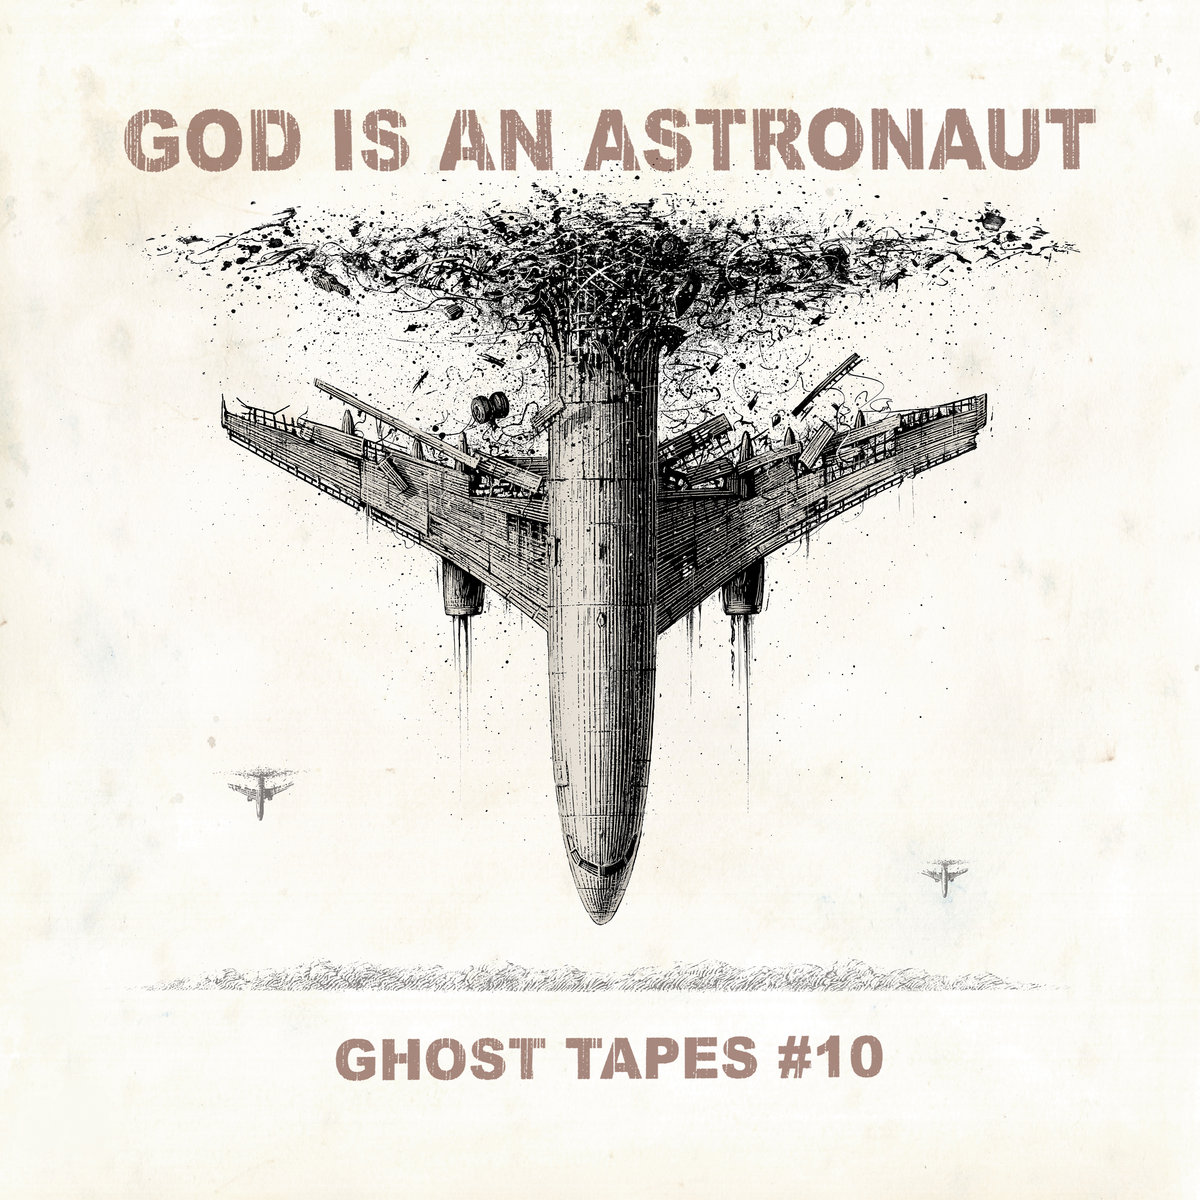 God Is an Astronaut: Ghost Tapes #10